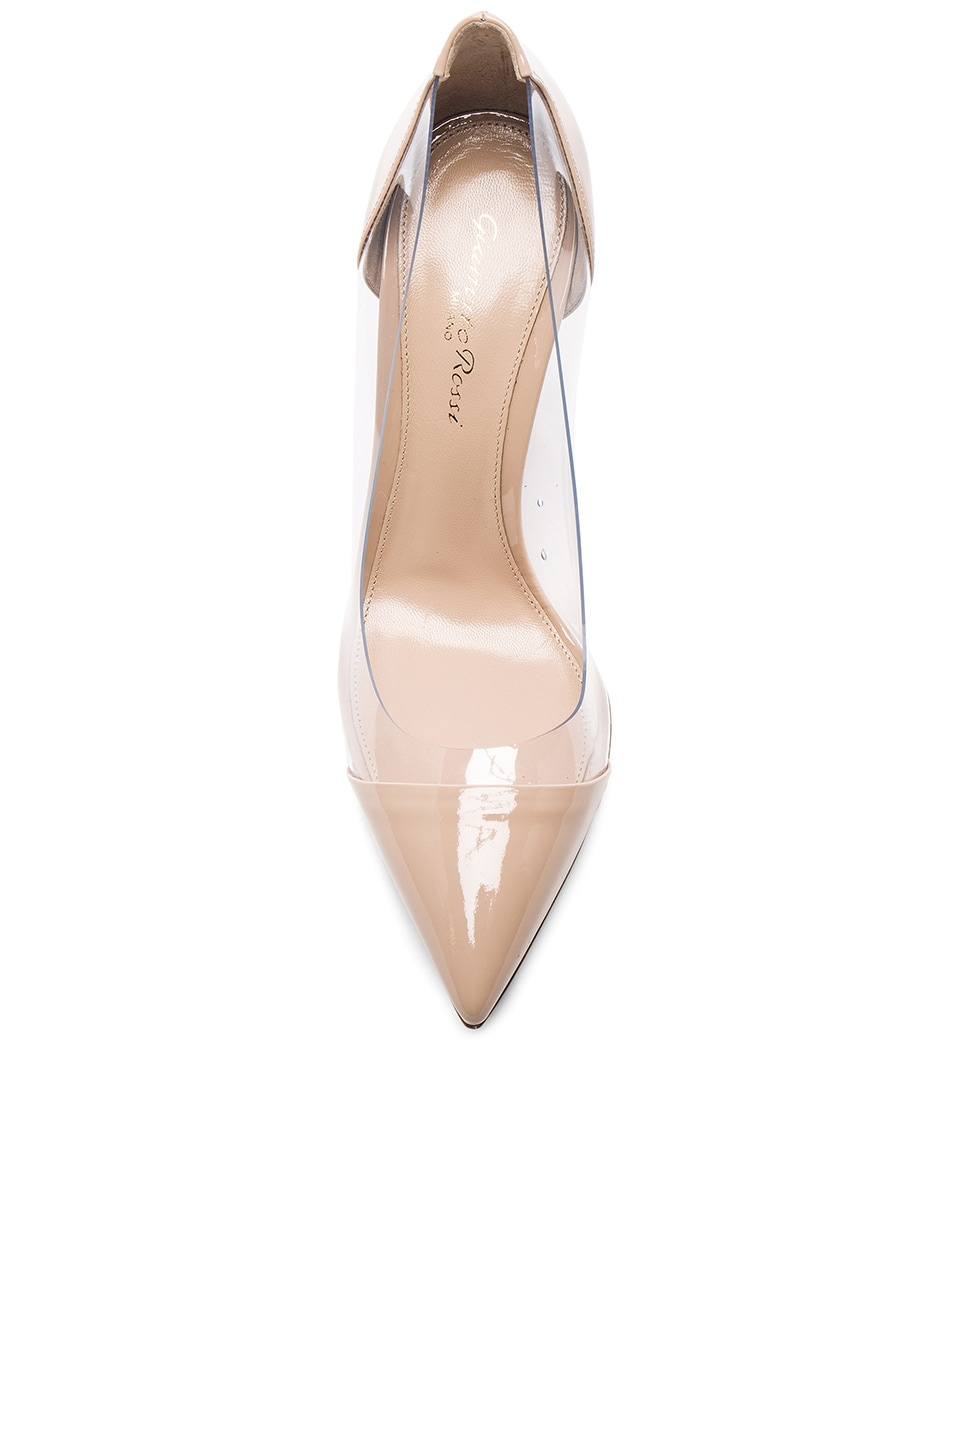 Image 4 of Gianvito Rossi Patent Leather Plexi Pumps in Nude